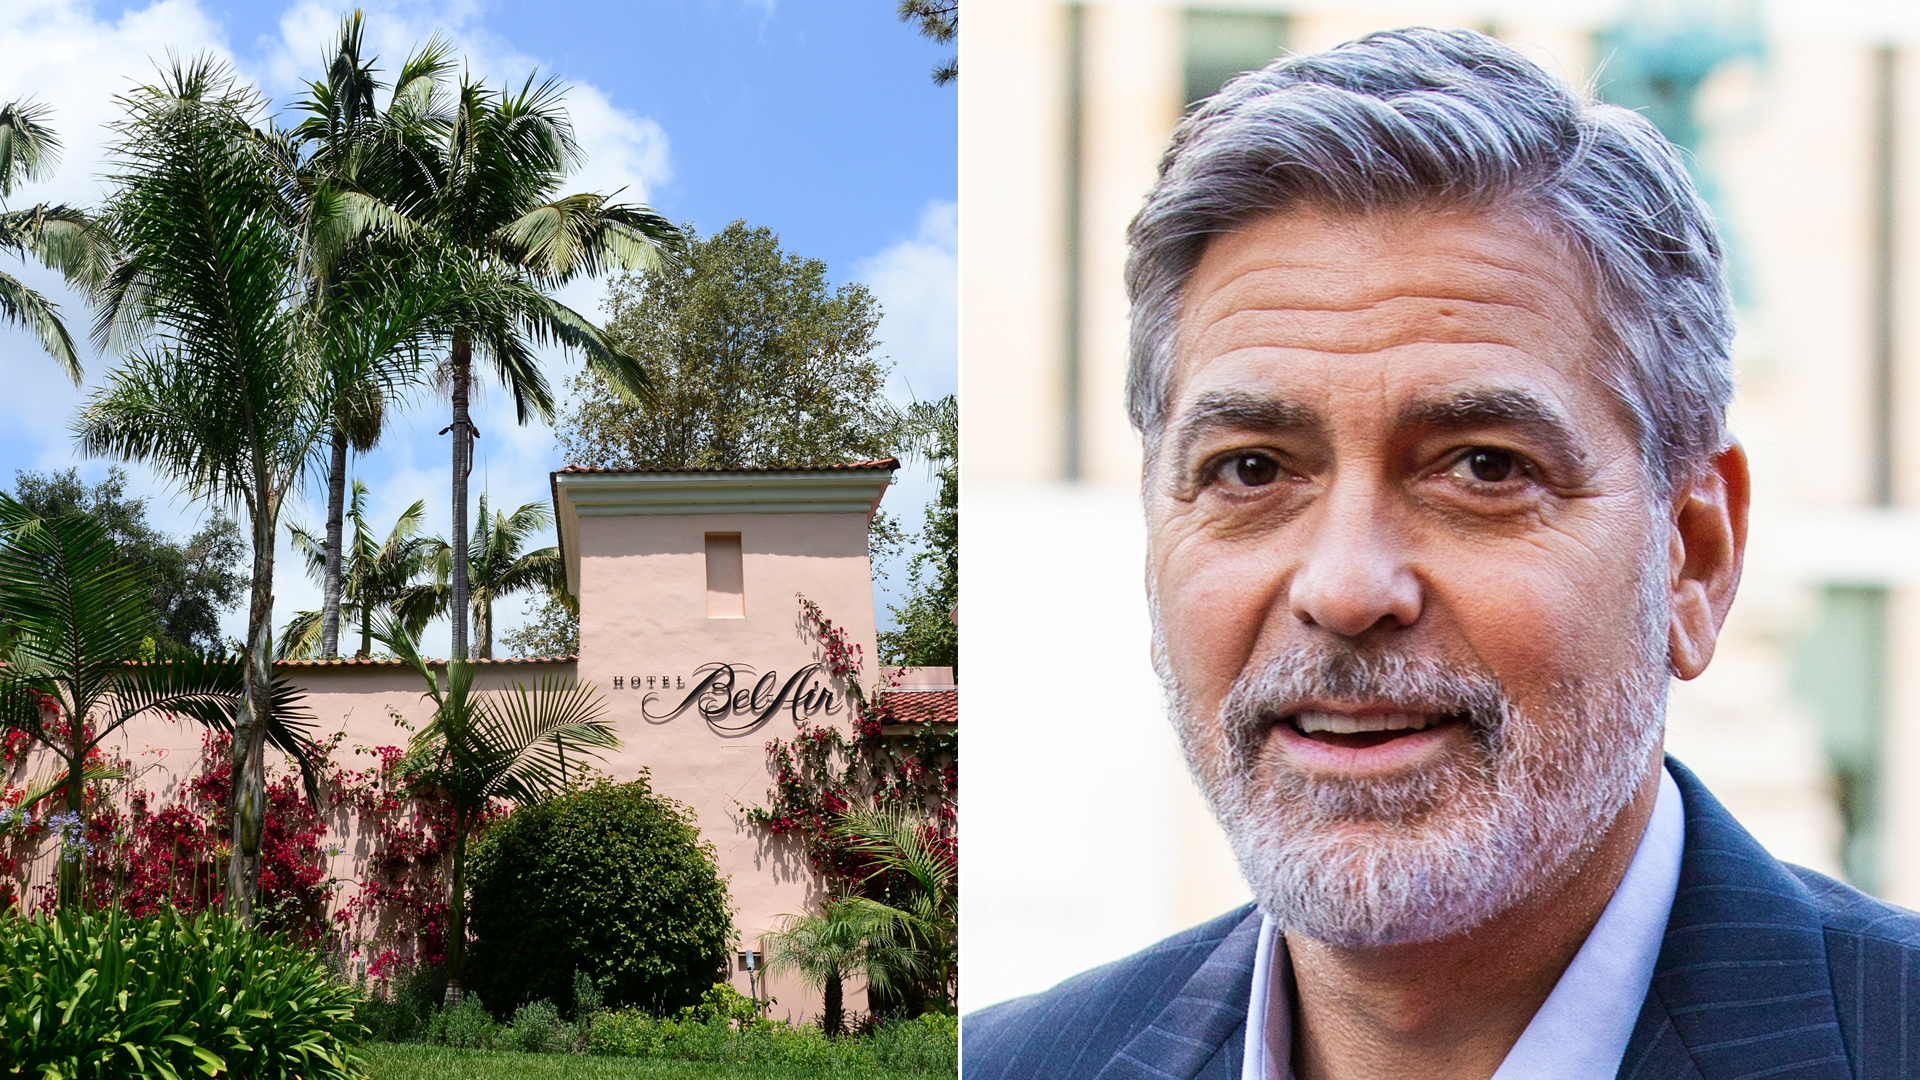 From right: The Bel-Air Hotel in Los Angeles, owned by the Sultan of Brunei, is shown on May 7, 2014, and George Clooney attends the charity gala in Edinburgh, Scotland, on March 15, 2019. (Credit: Frederic J. Brown / Duncan McGlynn / AFP / Getty Images)